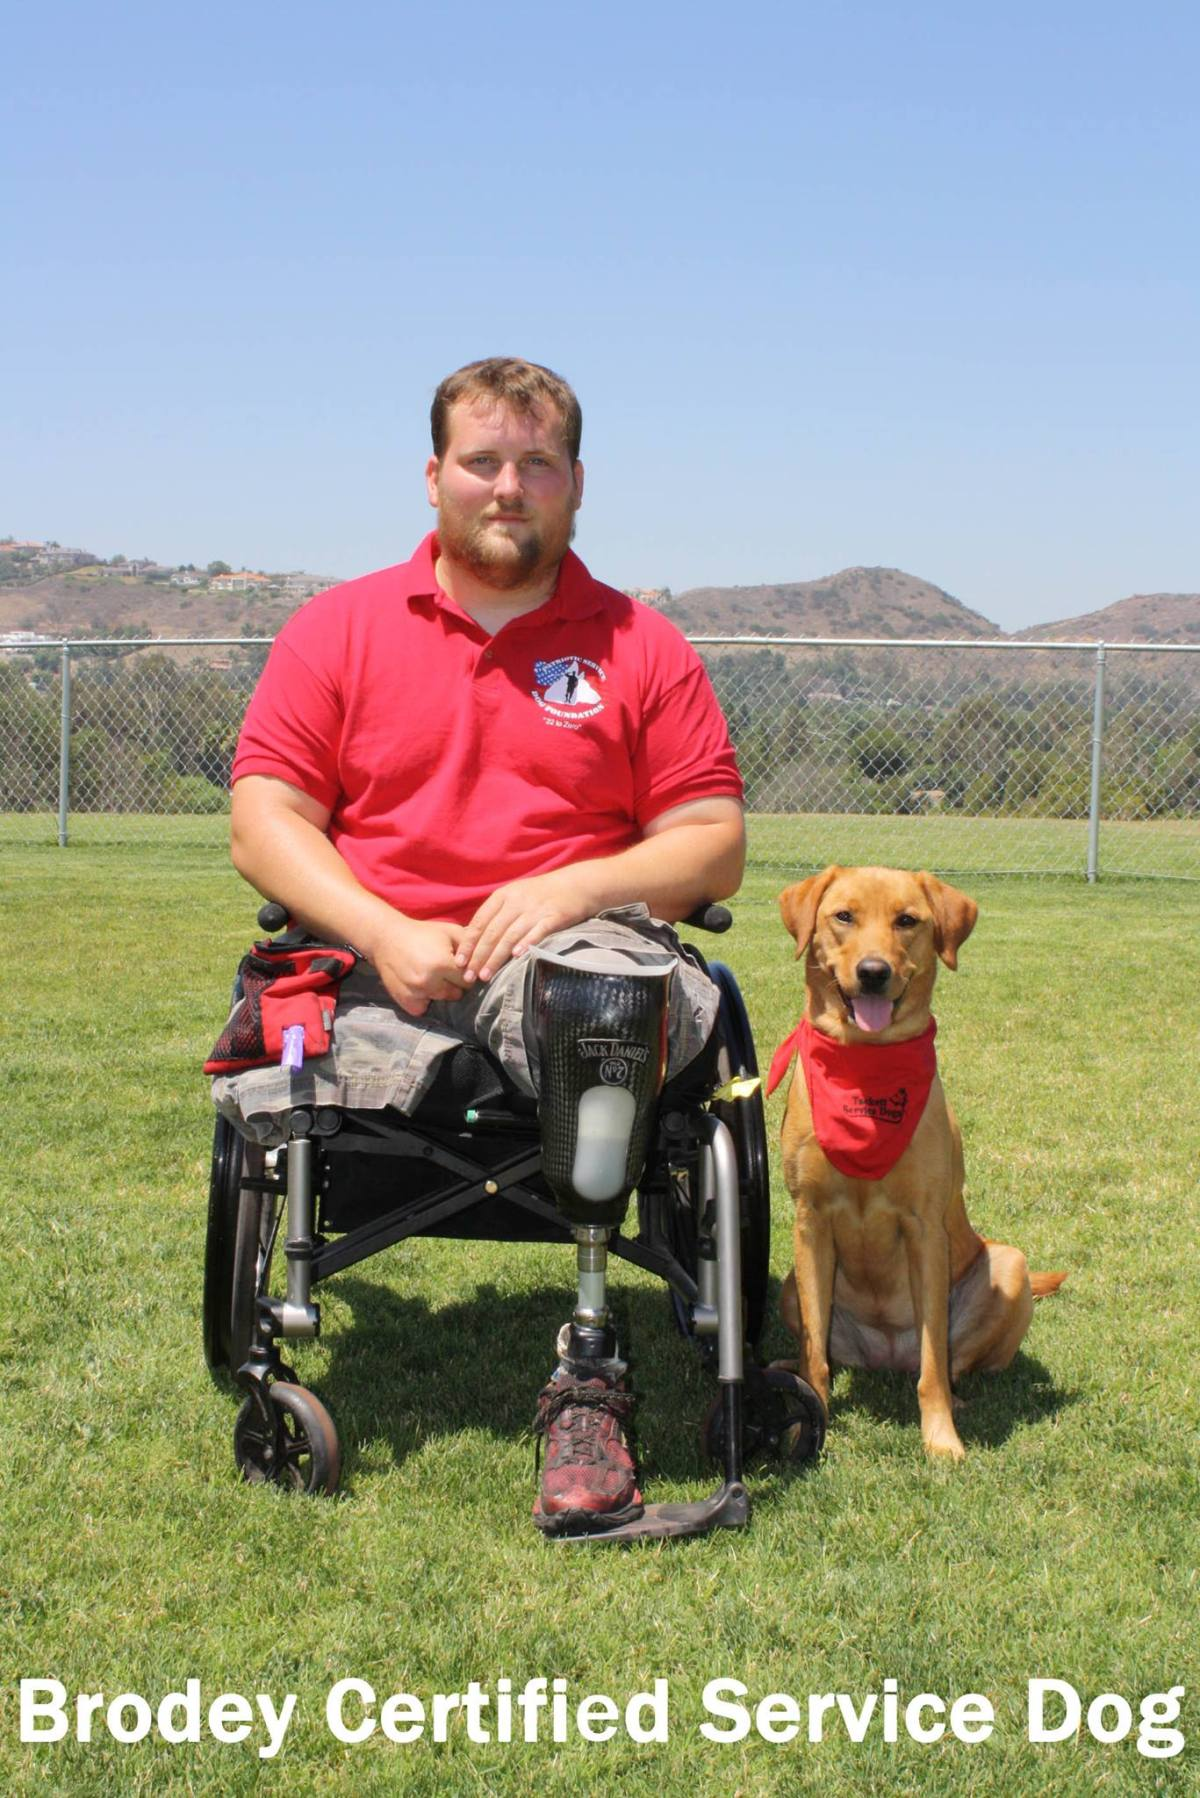 Shelter Dogs Helping to Improve the Lives of Our Veterans